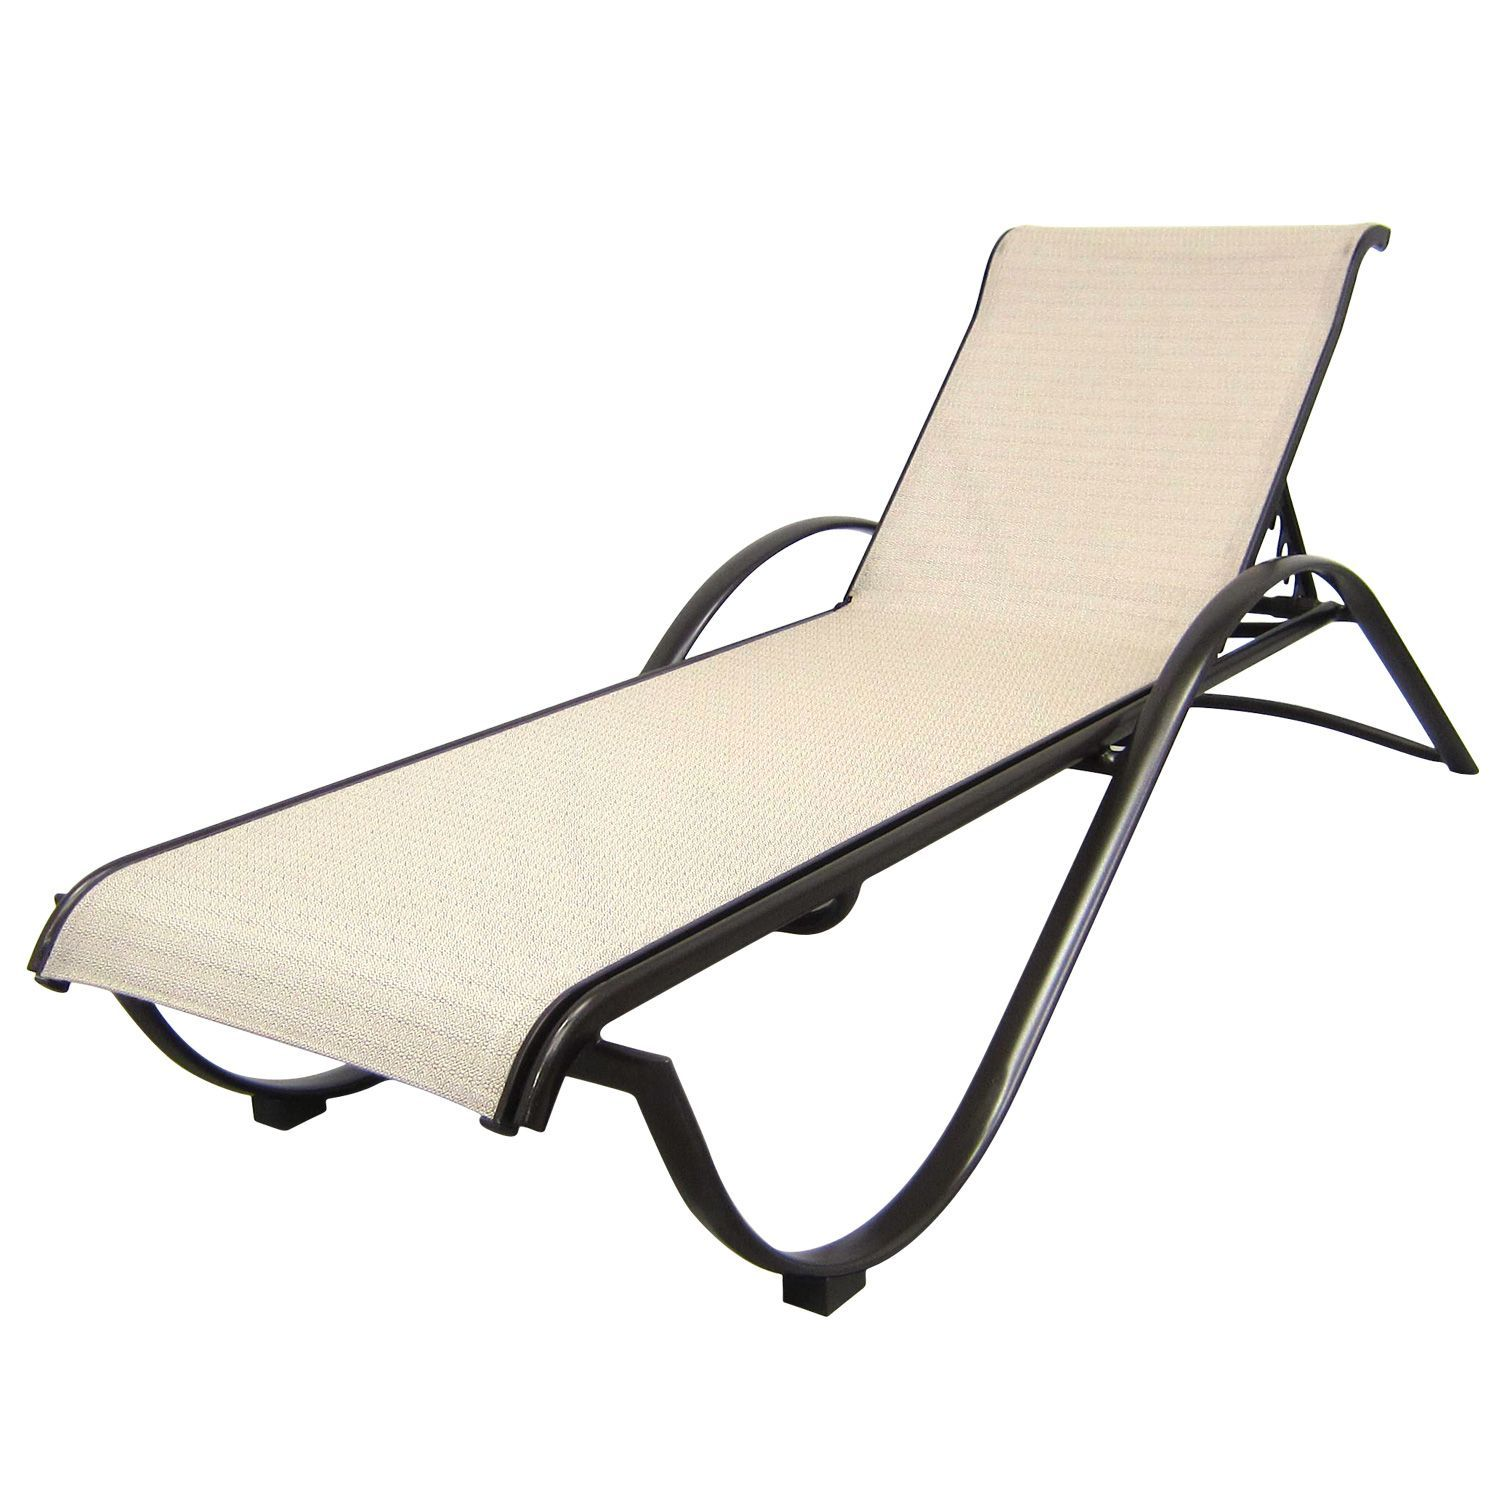 Aluminum Commercial Stack Chaise Lounge Sam S Club Chaise Lounge Chaise Outdoor Chaise